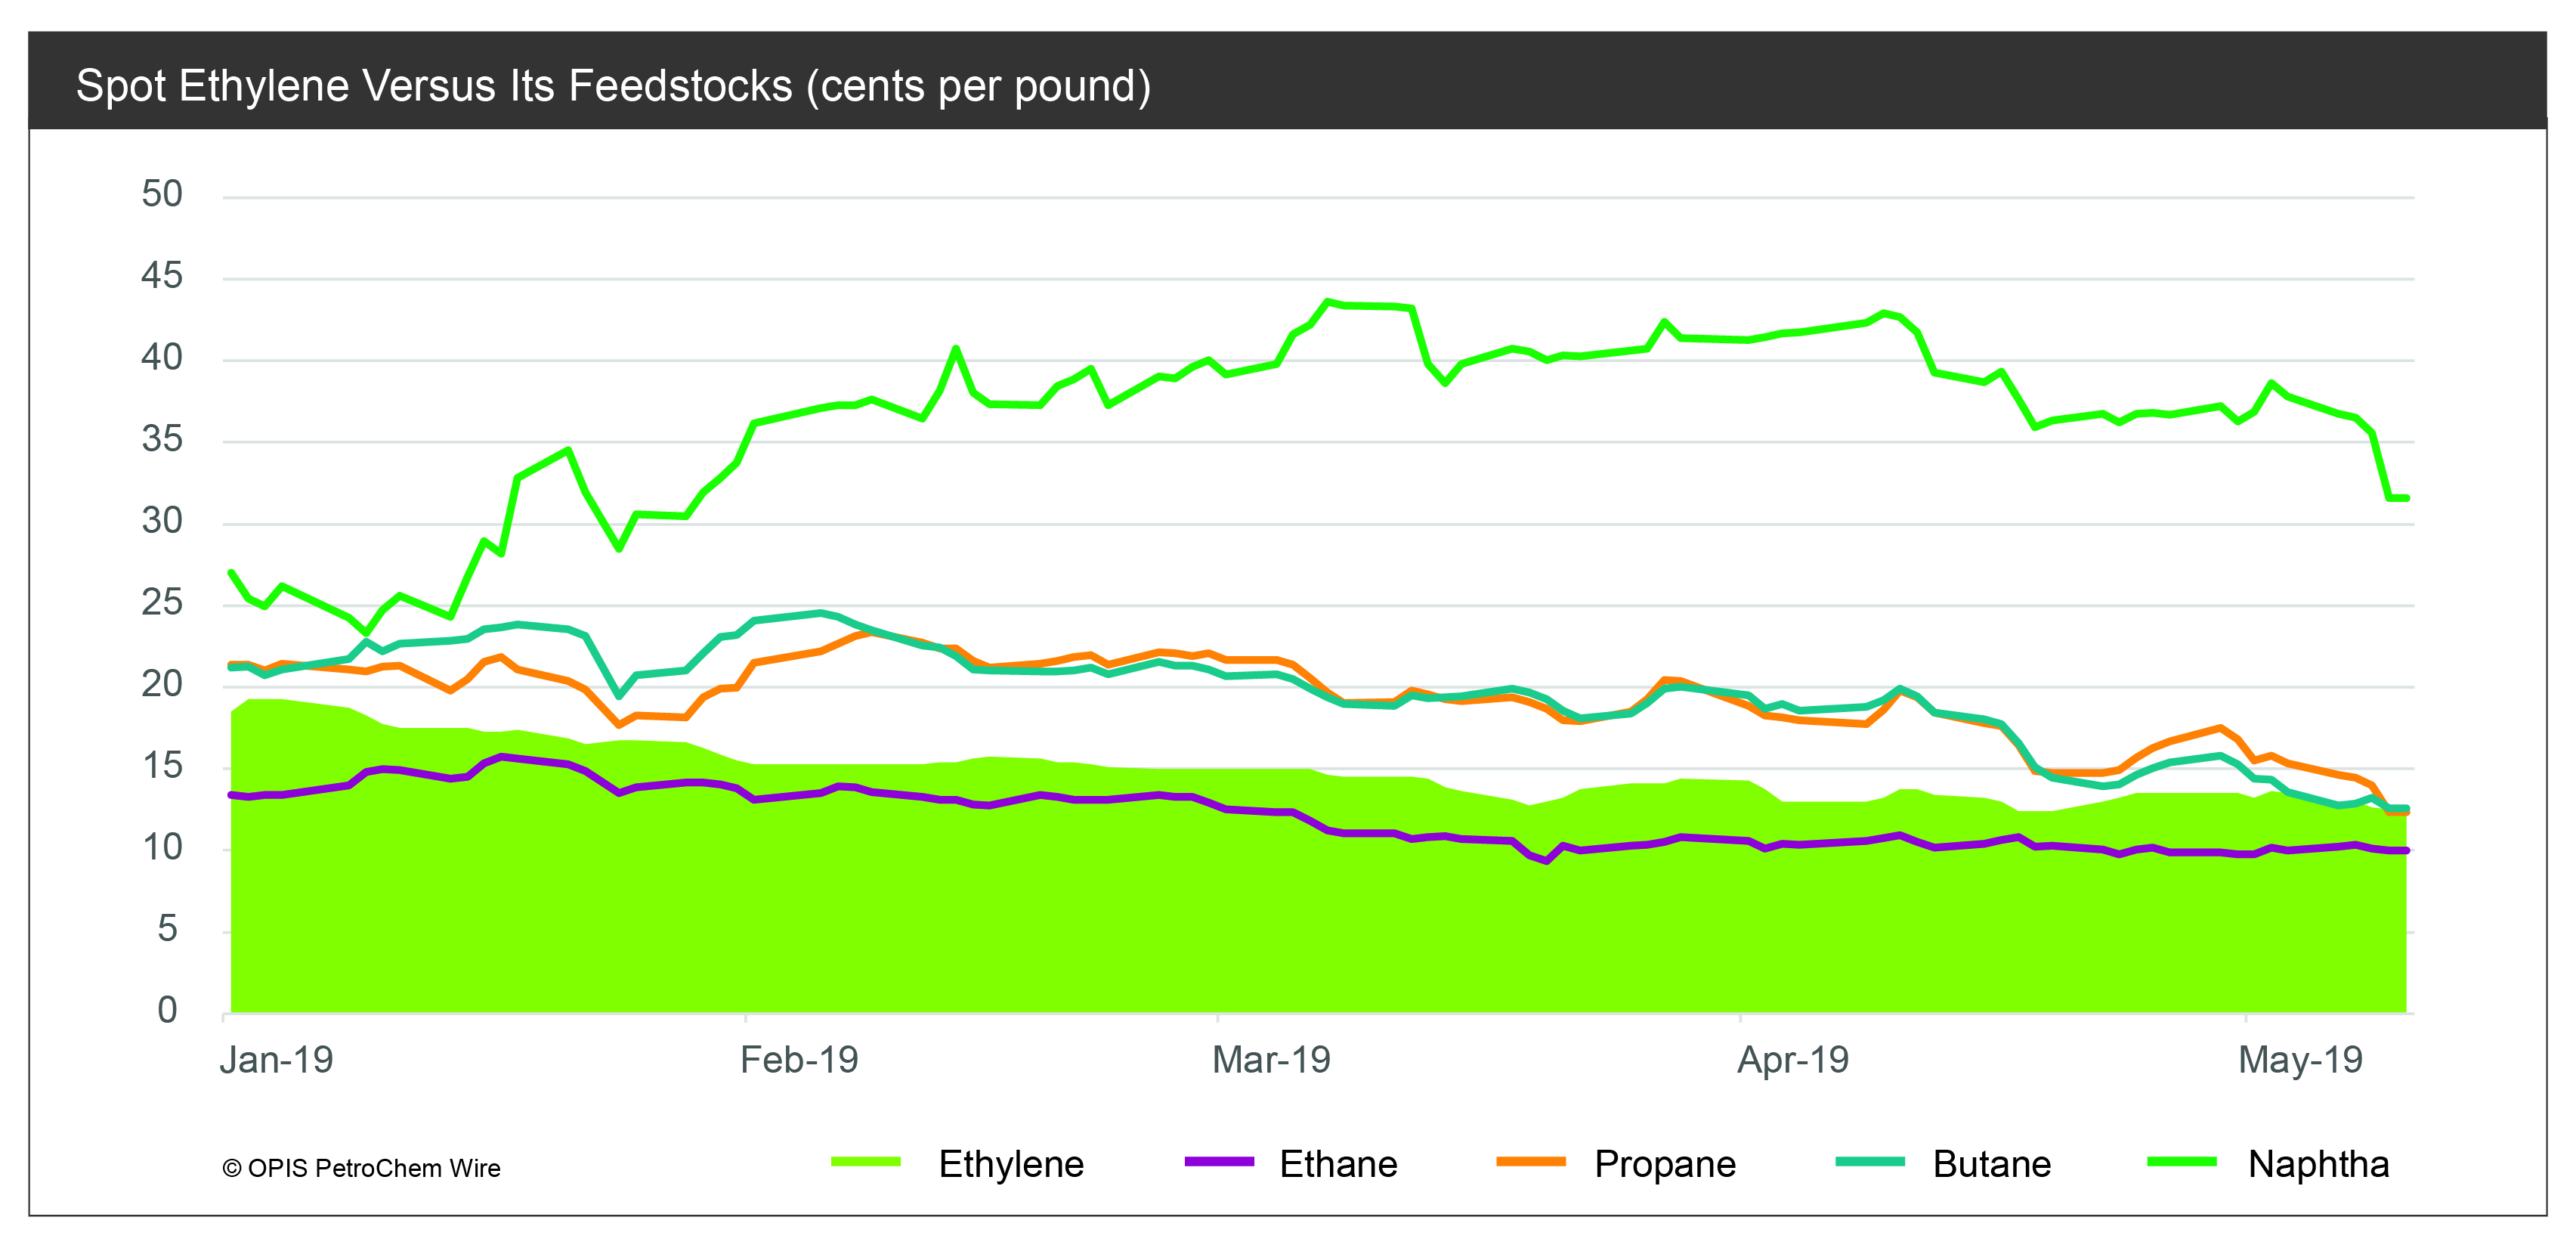 Spot ethylene vs feedstocks